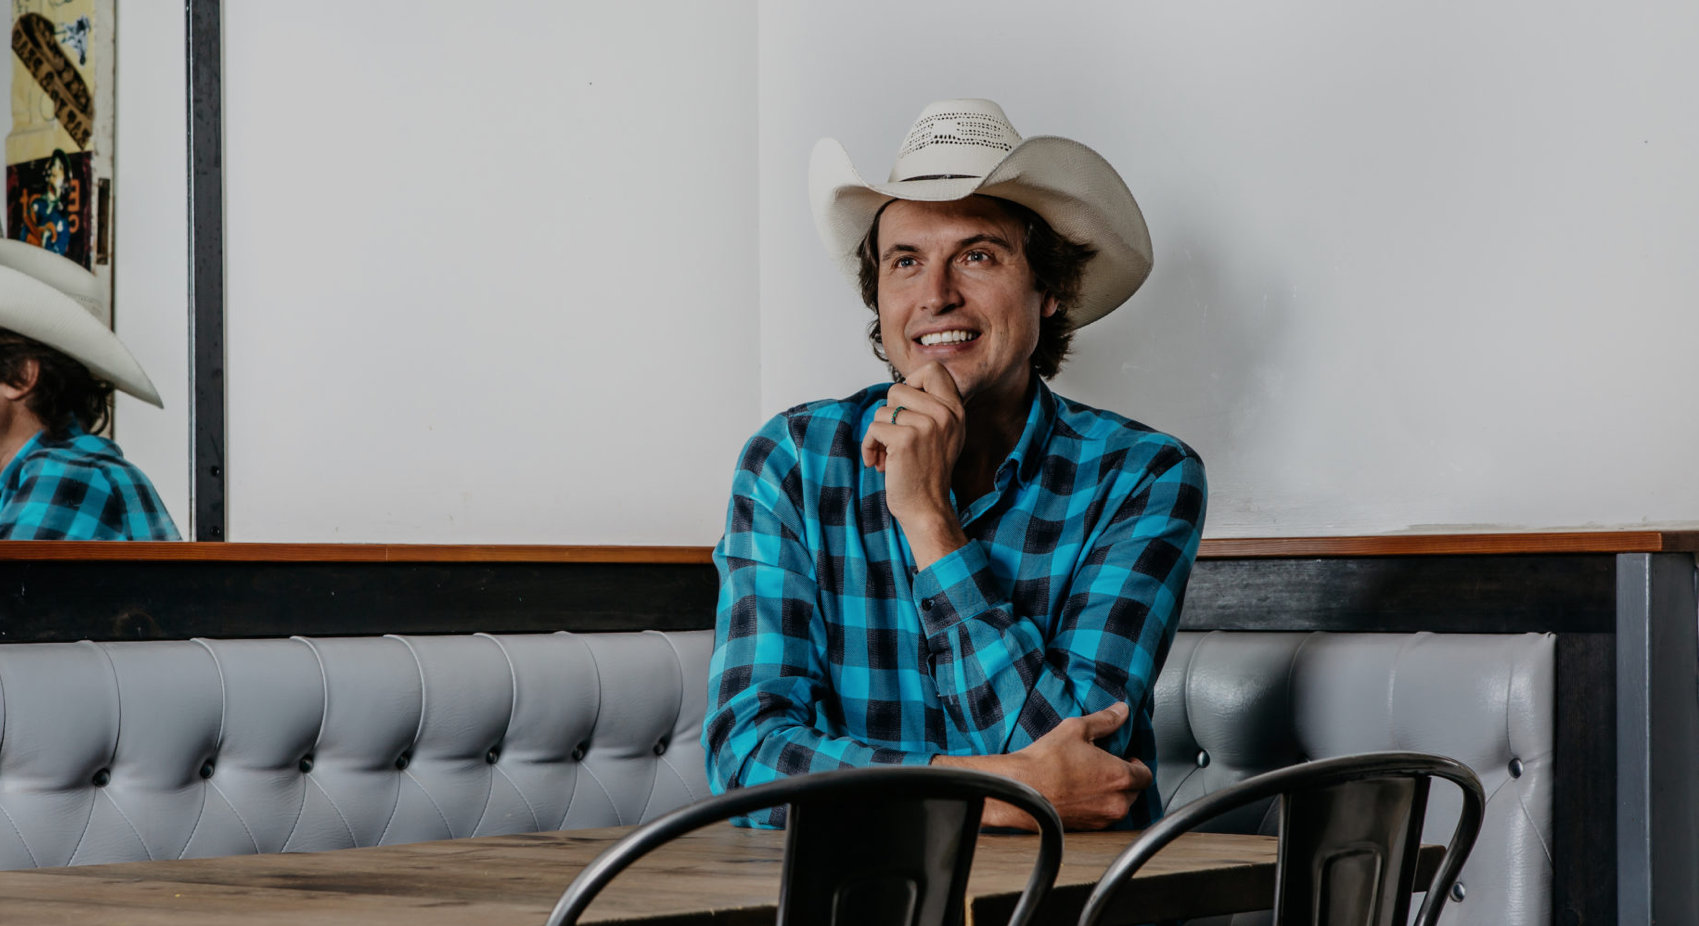 Kimbal Musk: Food, Farming & Garden Learning - The Not Old Better